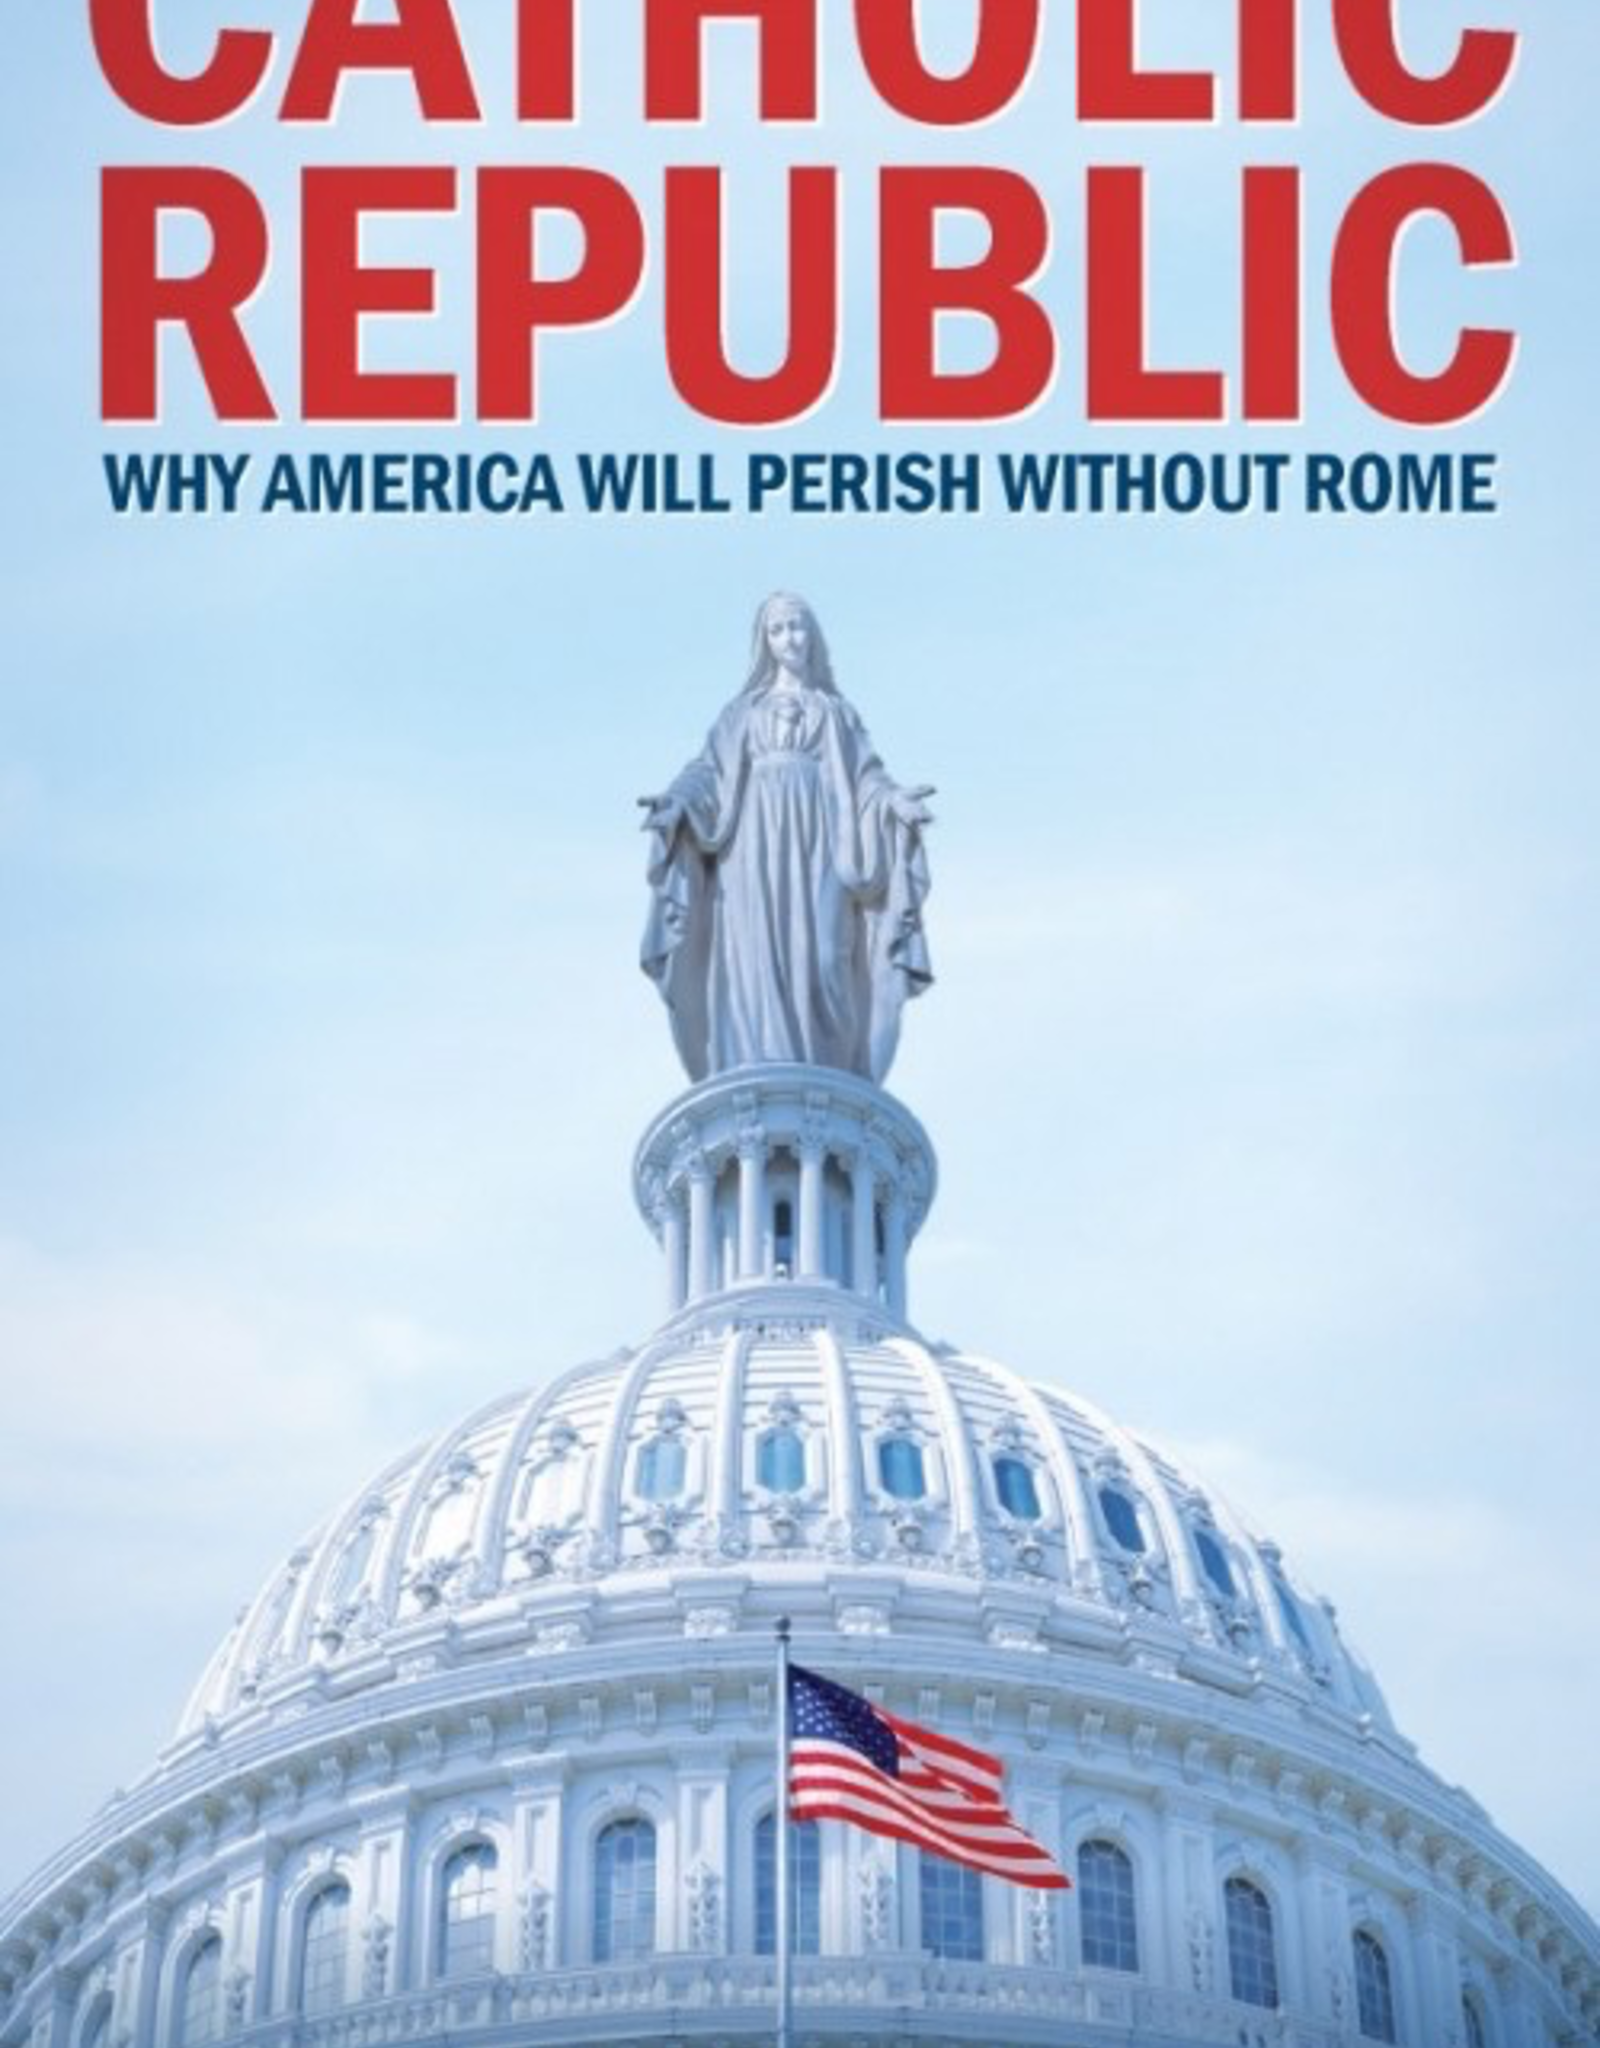 Sophia Institute Catholic Republic:  Why America Will Perish without Rome, by Timothy Gordon (paperback)